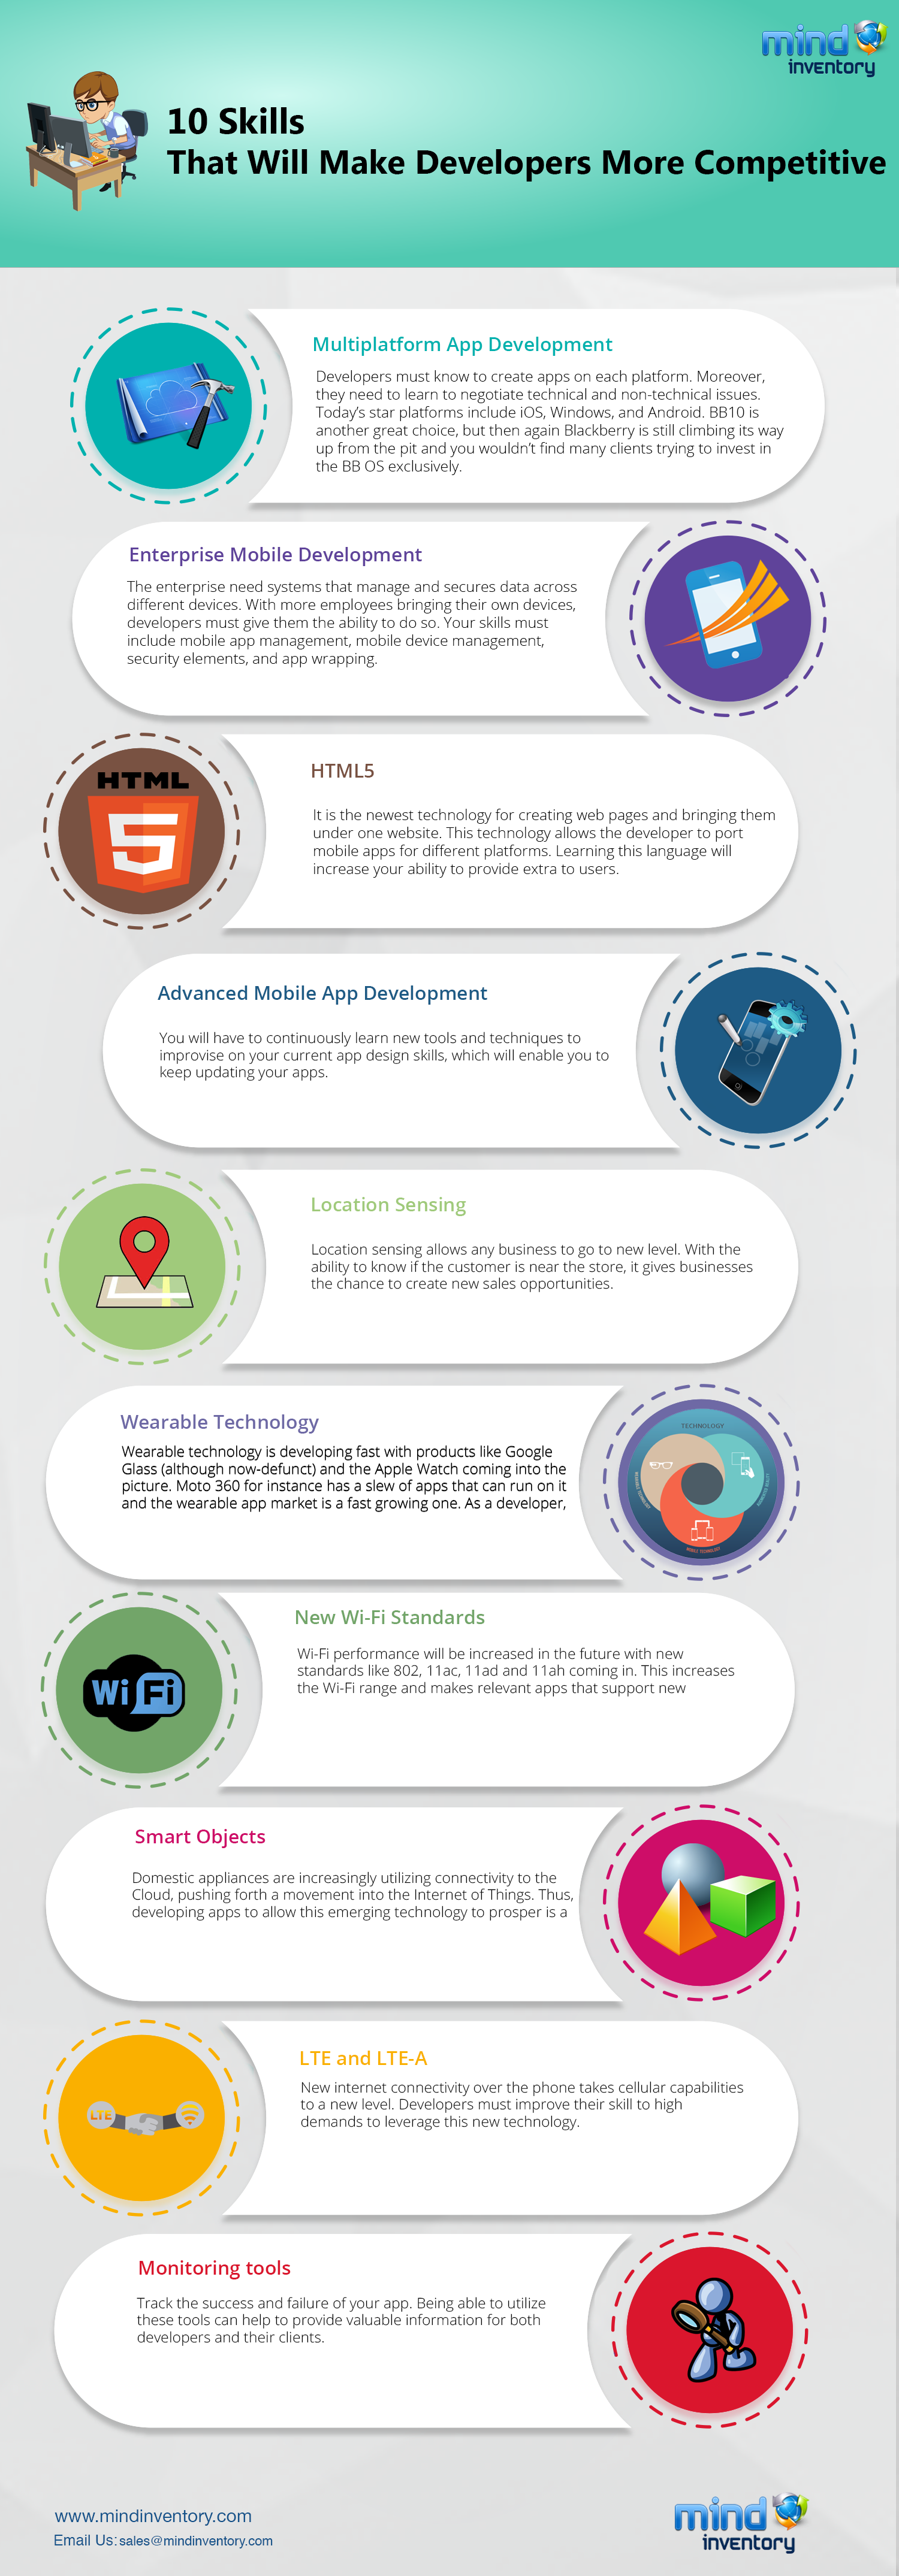 10 Skills That Will Make Developers More Competitive Infographic